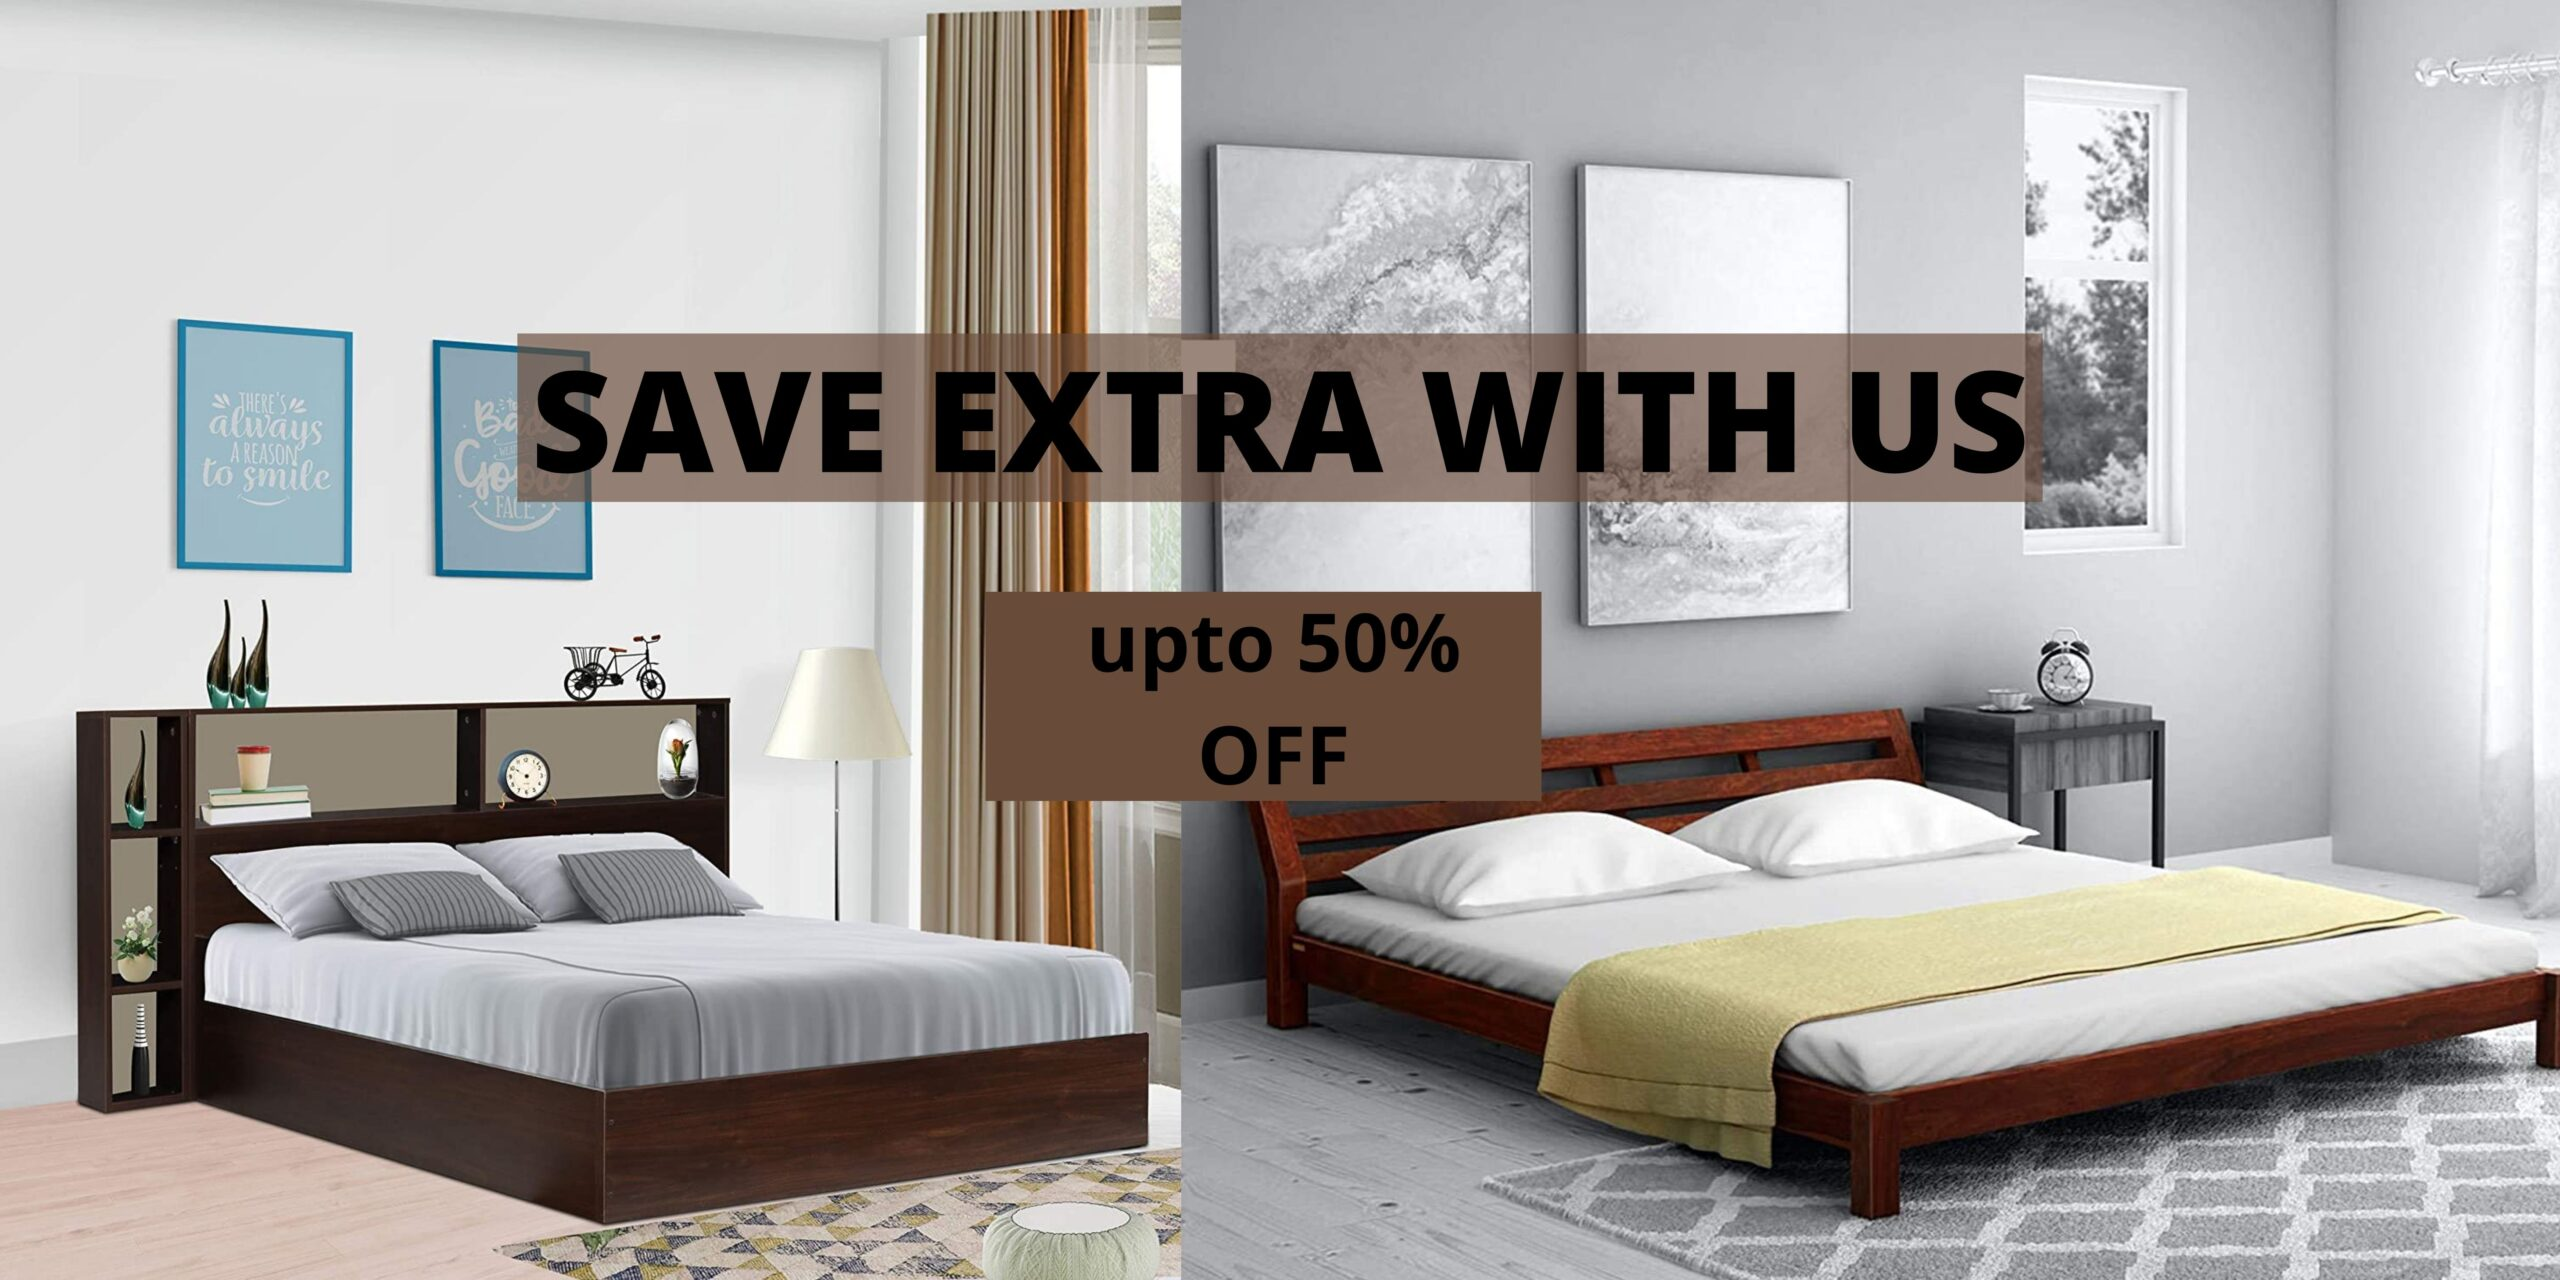 Buy Bed Online - Buy Wooden Beds Starts from Rs.9999 in India - Trendswink